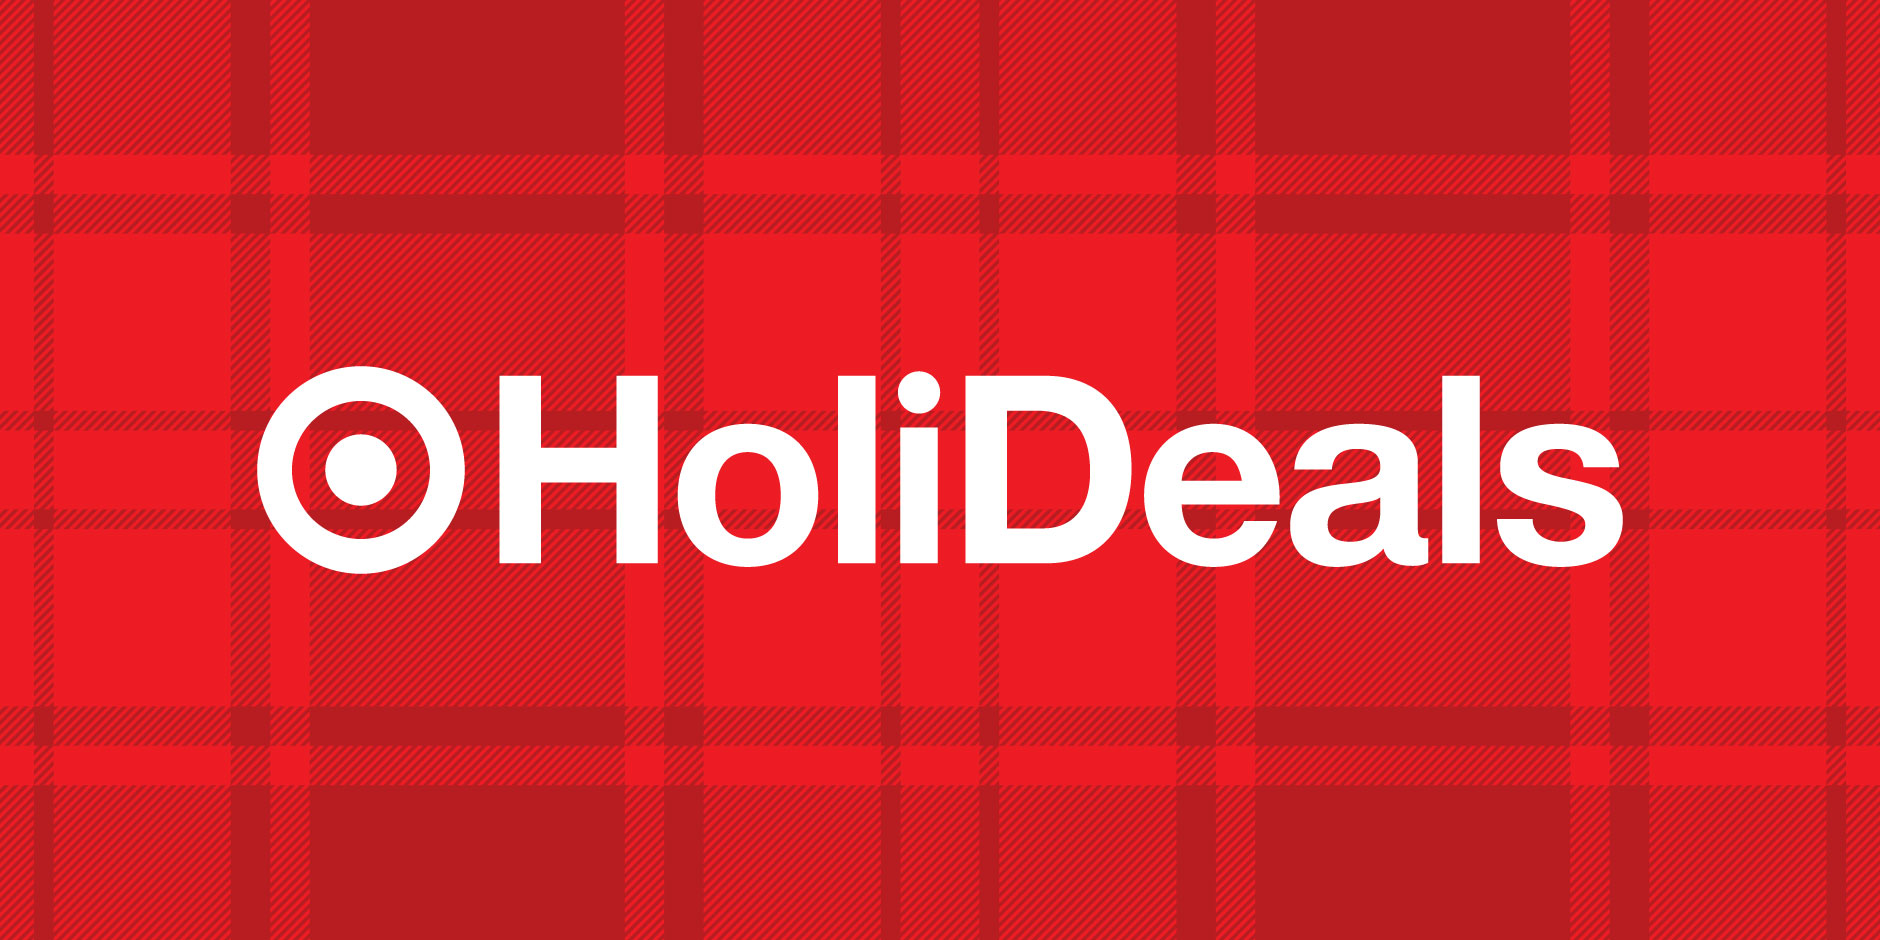 The Target HoliDeals logo in white text against a red plaid background